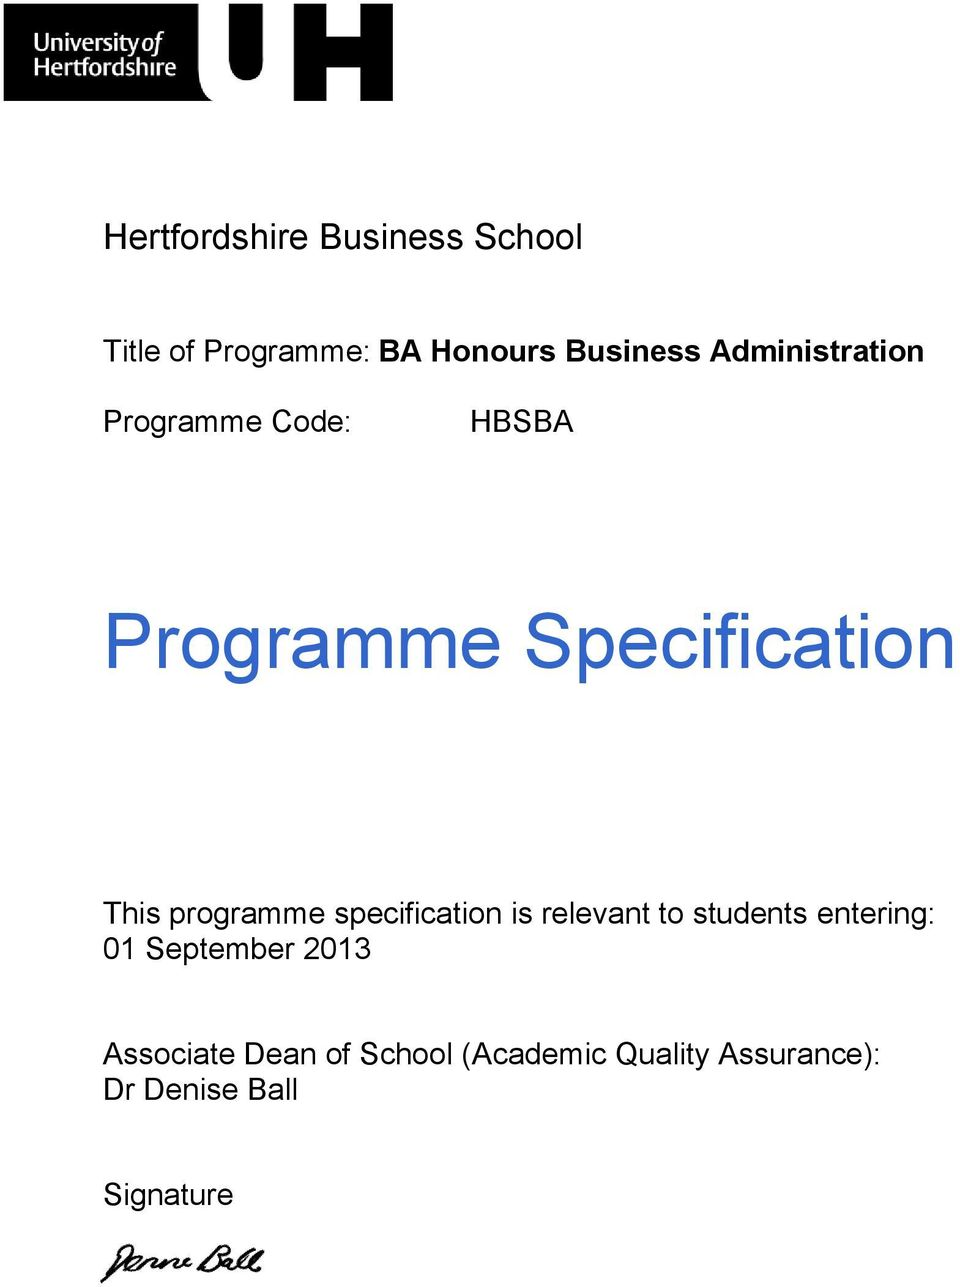 programme specification is relevant to students entering: 01 September